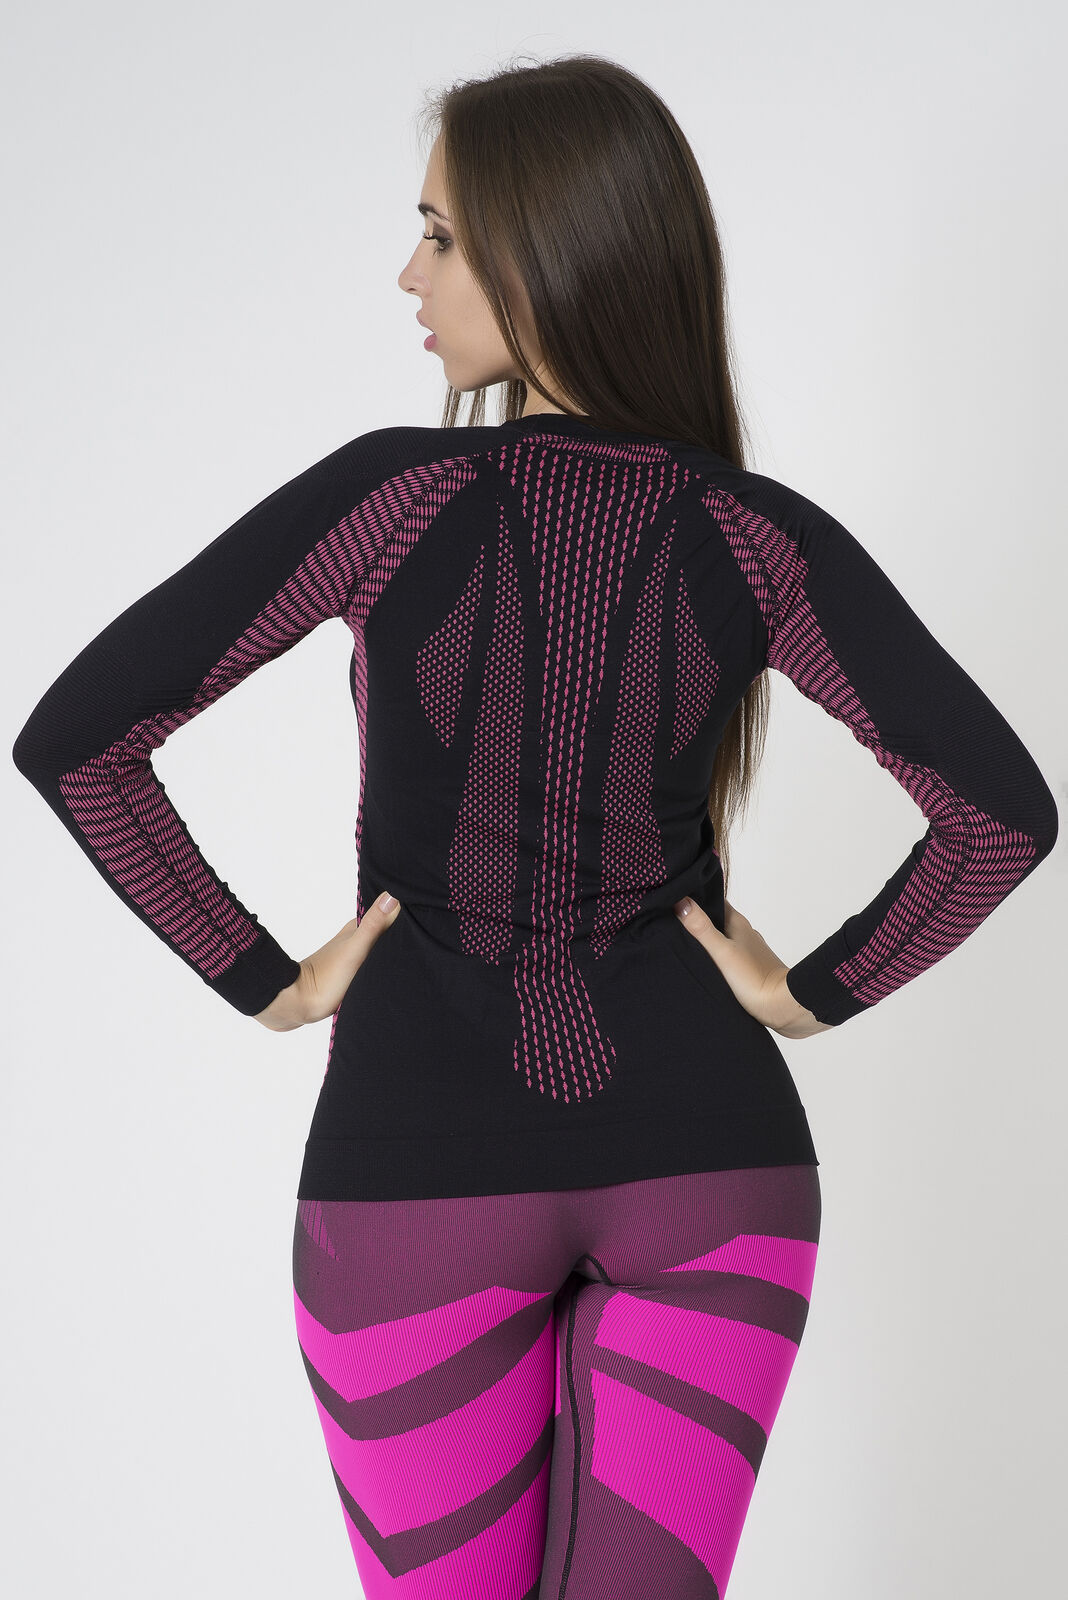 Bellissima-Women-039-s-Athletic-Compression-Long-Sleeve-Shirt-Moisture-Wicking-Top thumbnail 13